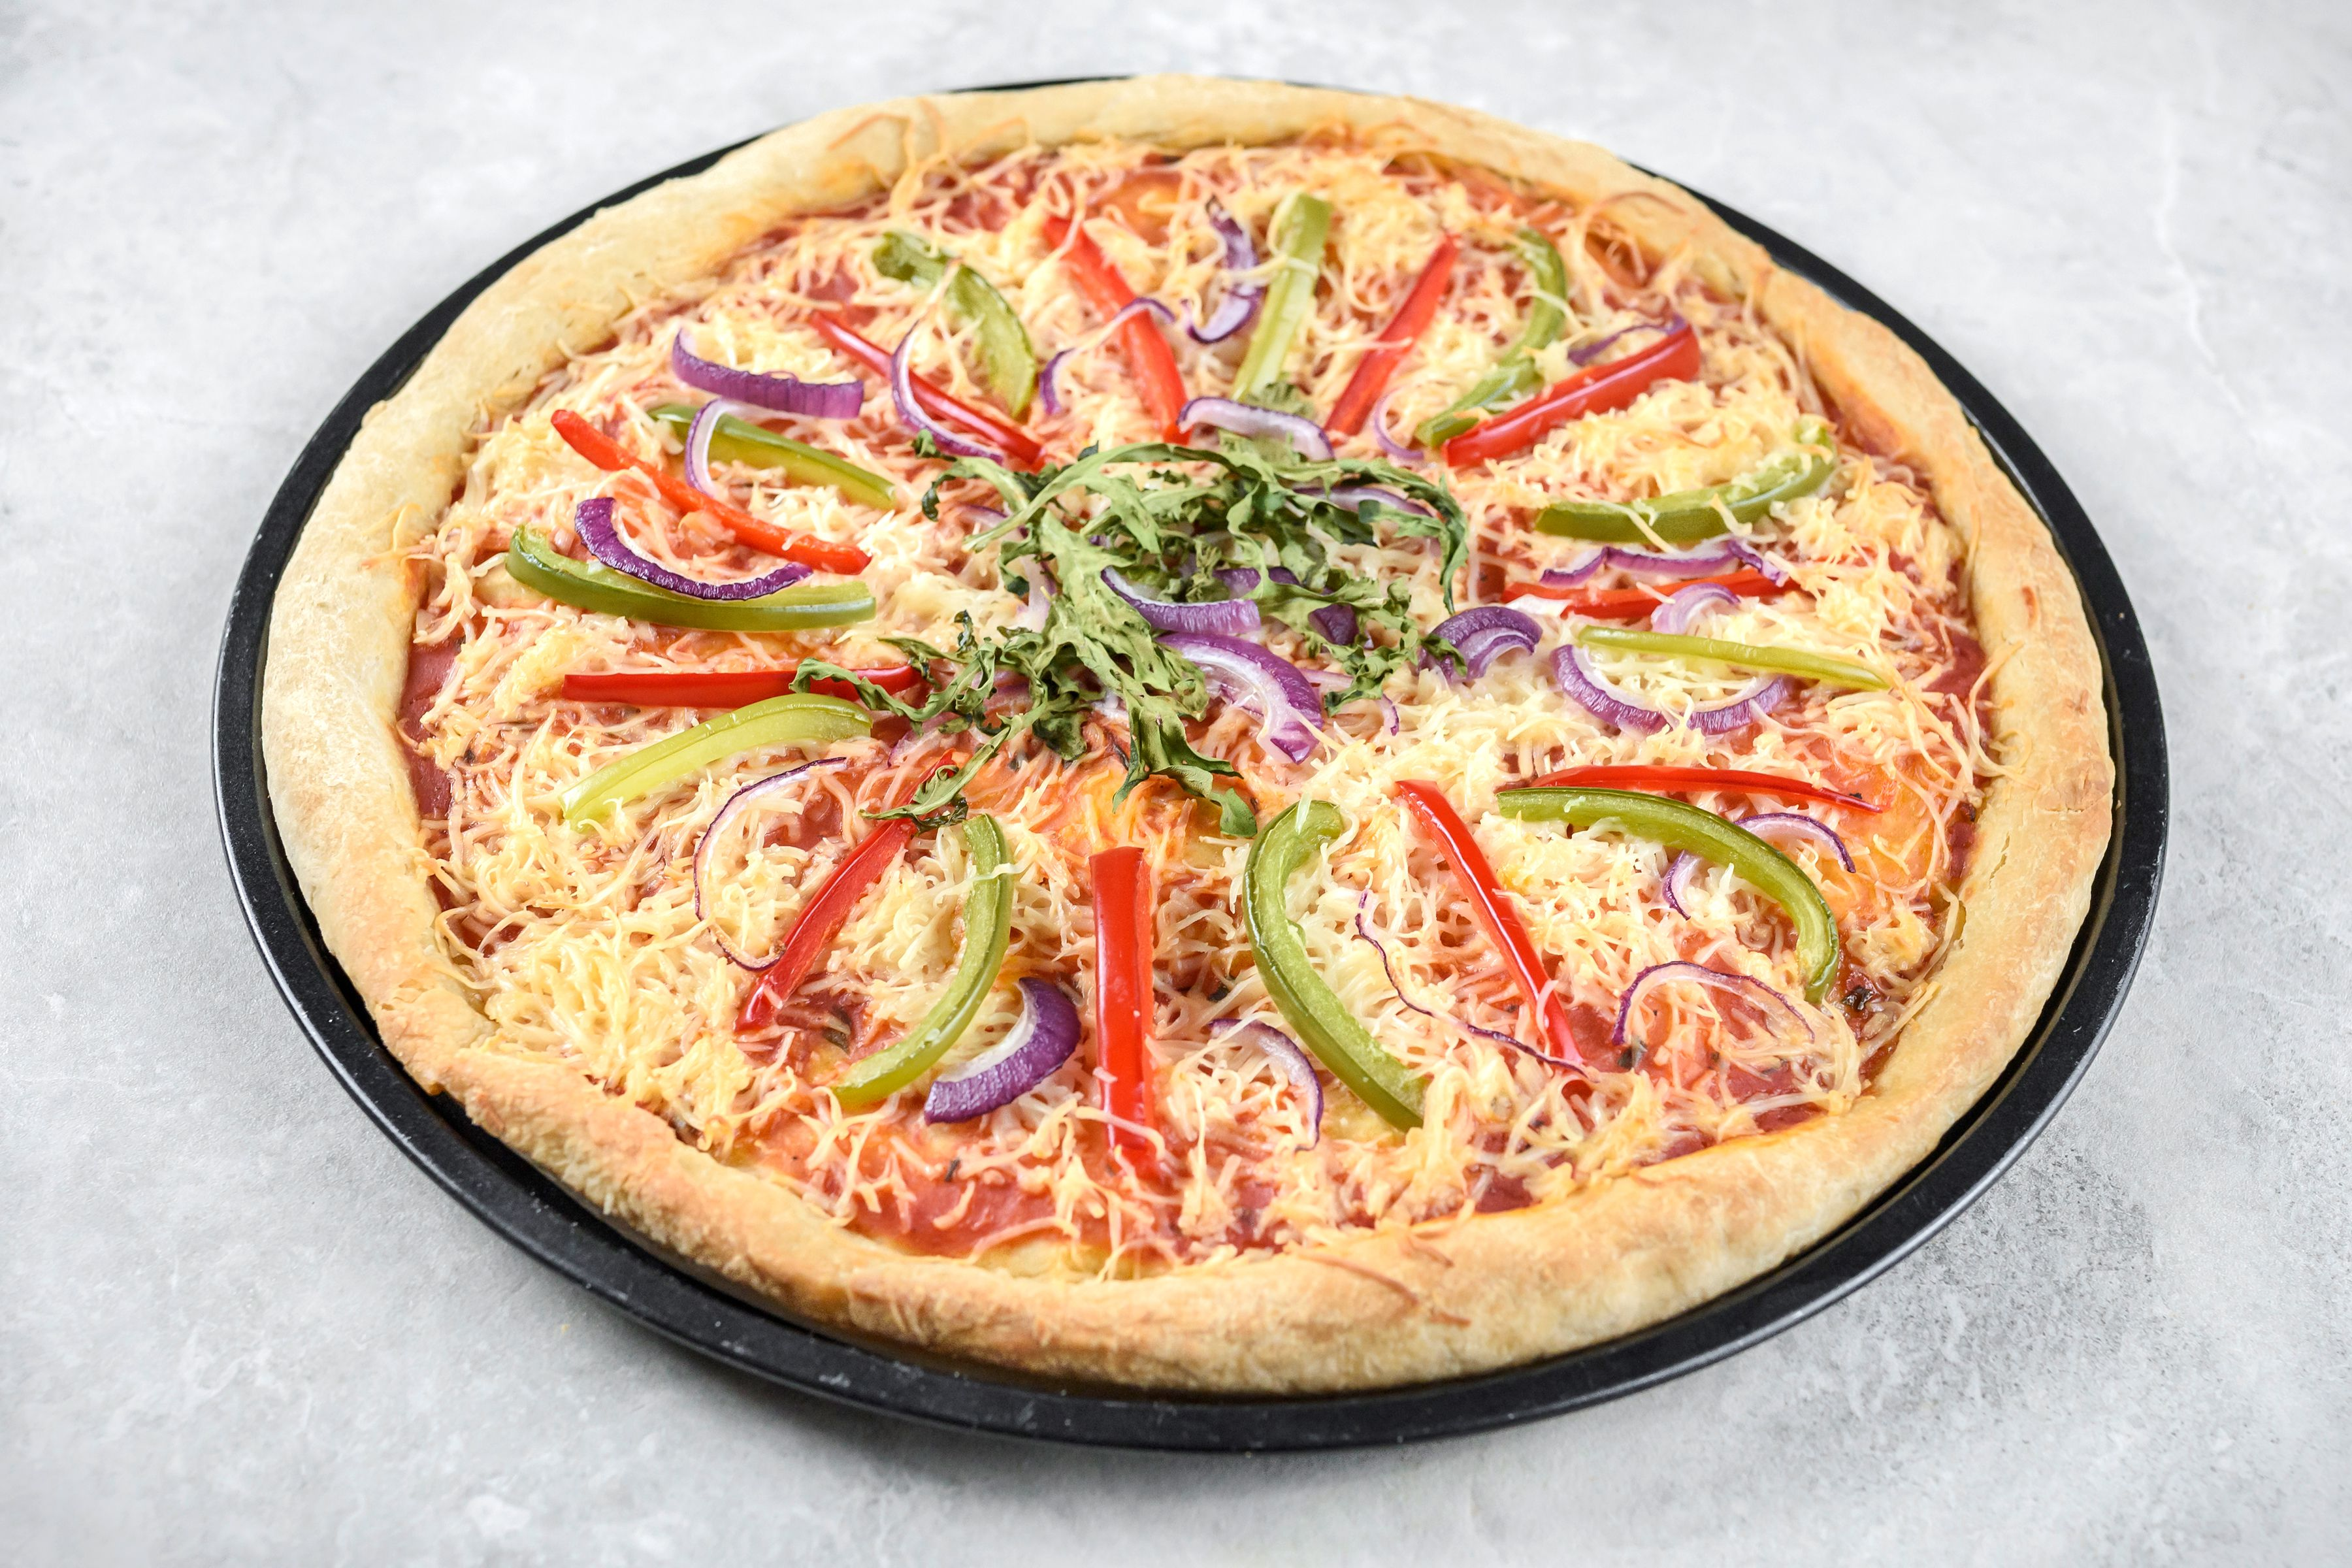 allow the pizza to cool slightly